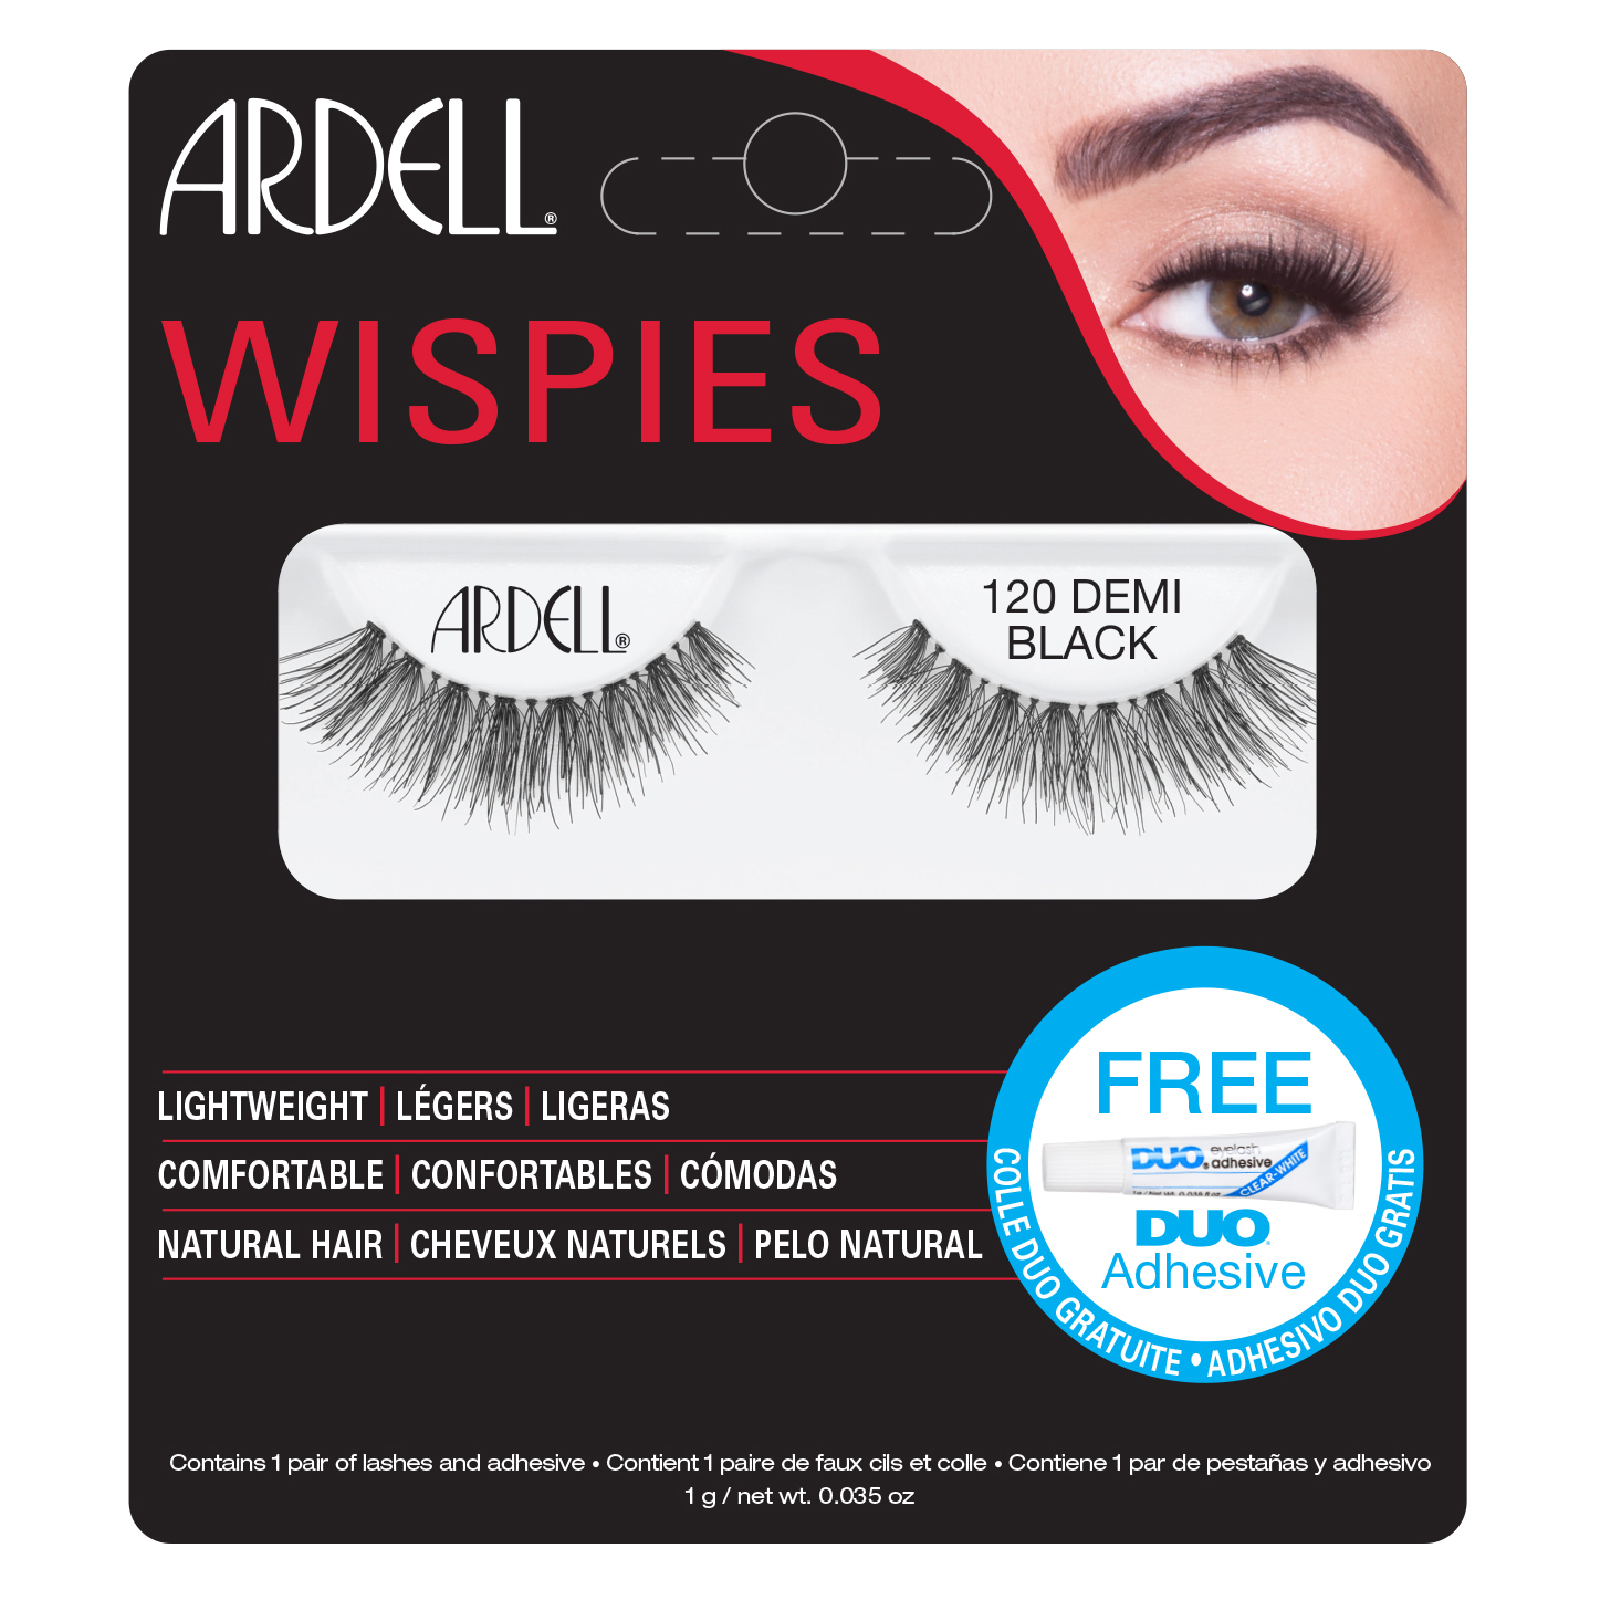 b76fff7eab4 Ardell Demi Wispies False Eyelashes - 120 Black | Free Shipping |  Lookfantastic